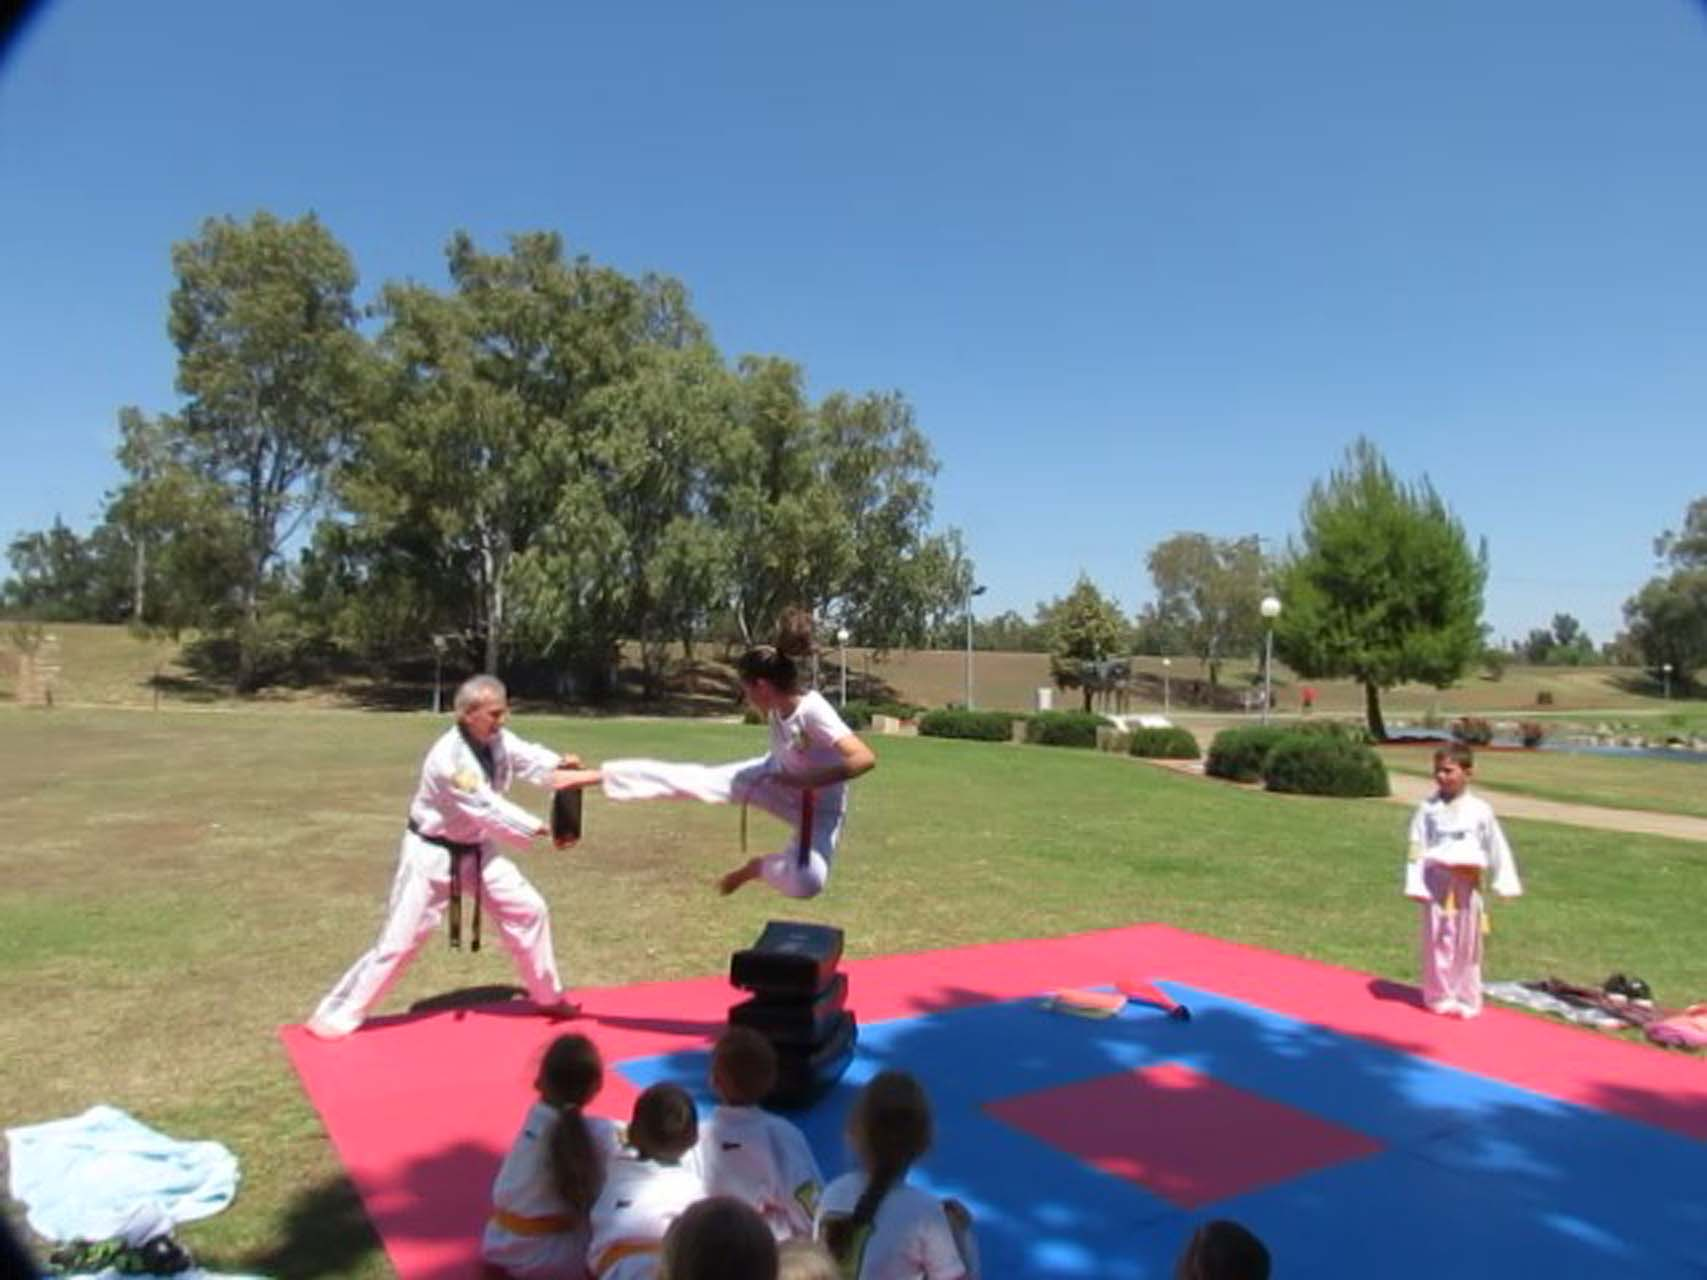 A young female taekwondo student flys through the air at her instructor.